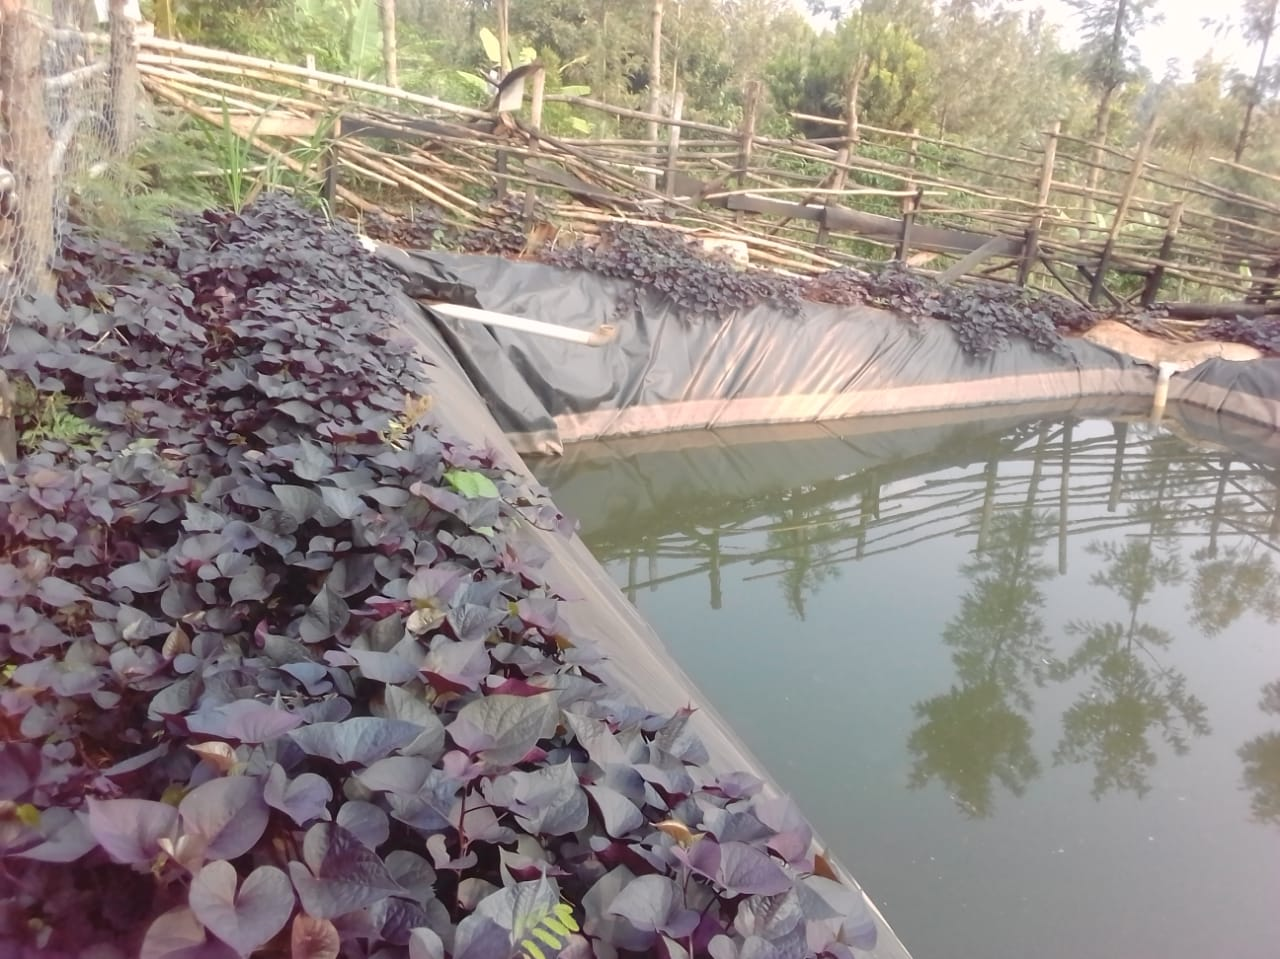 Water harvesting sets Nyeri vegetable farmer on the path to